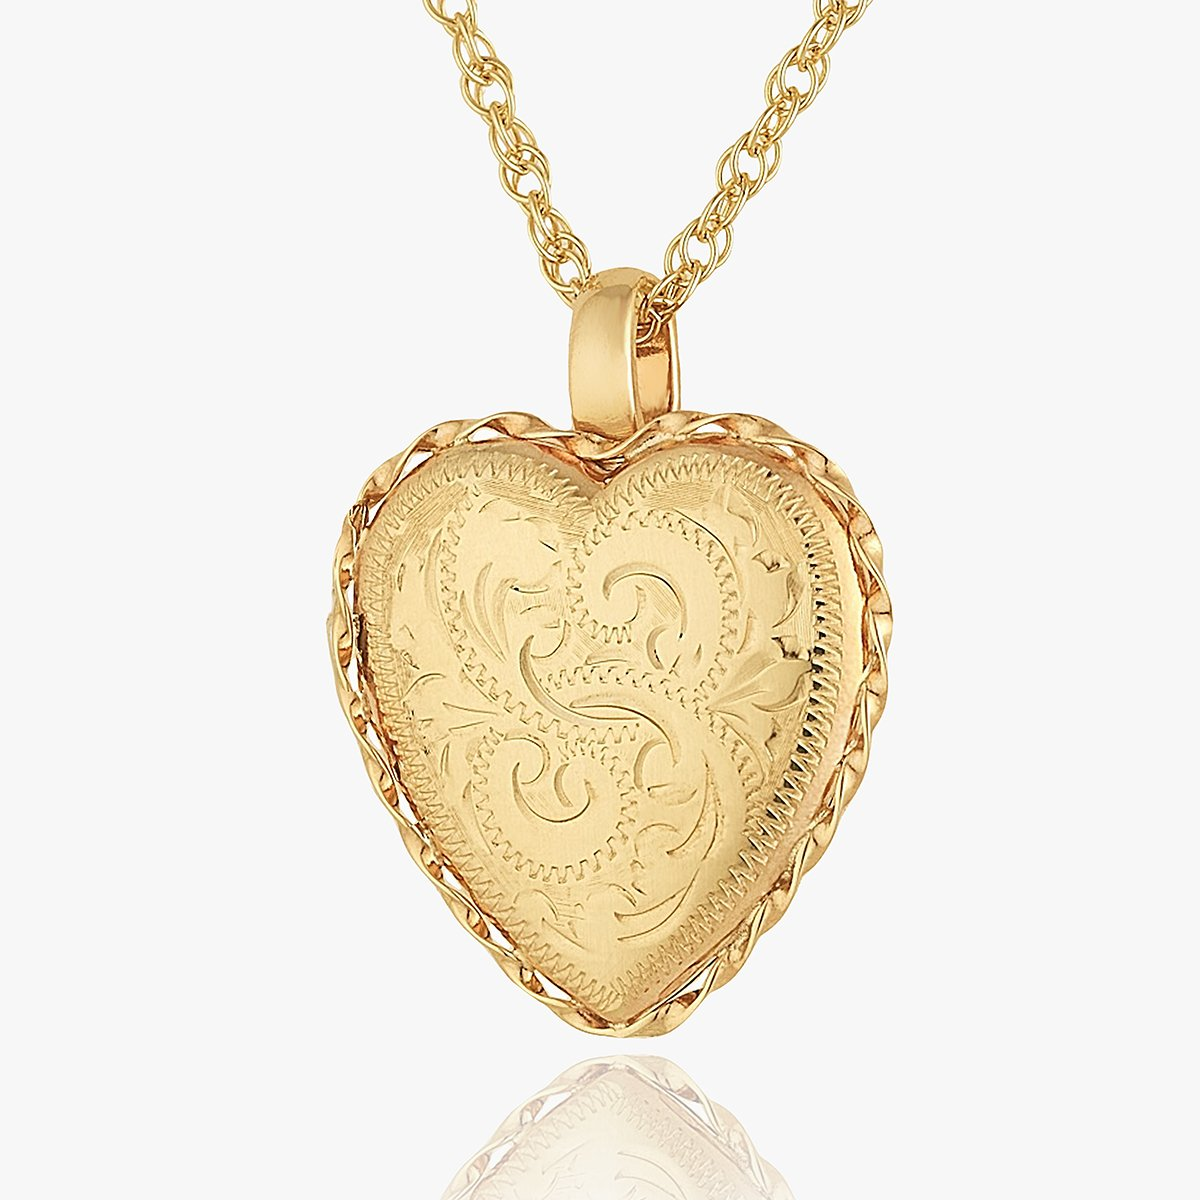 Product title: Victorian Gold Heart Locket, product type: Locket